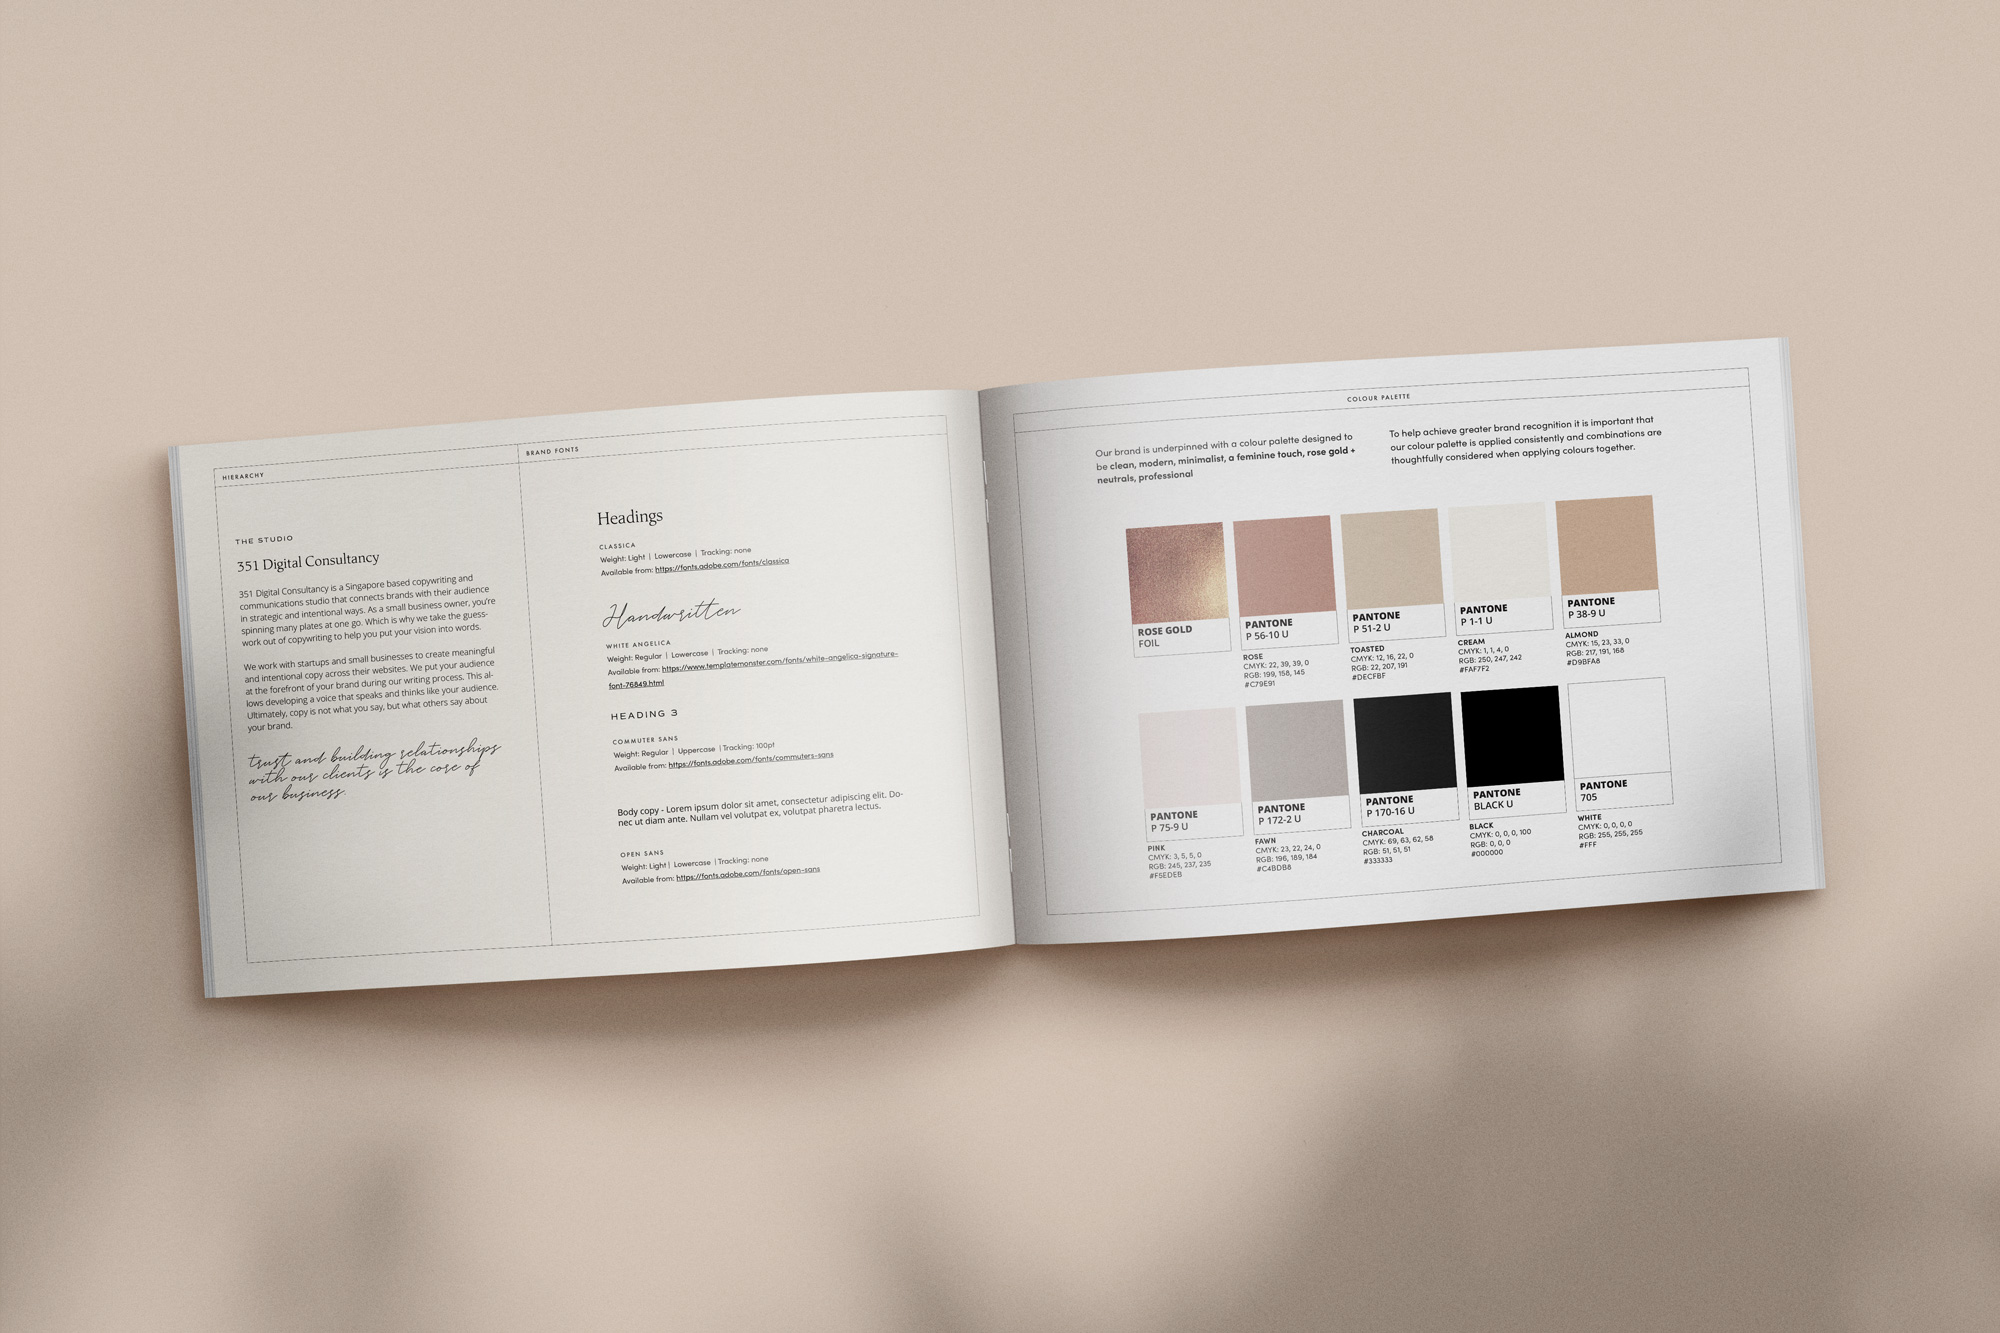 351 Digital Consultancy guidelines - by January Made Design